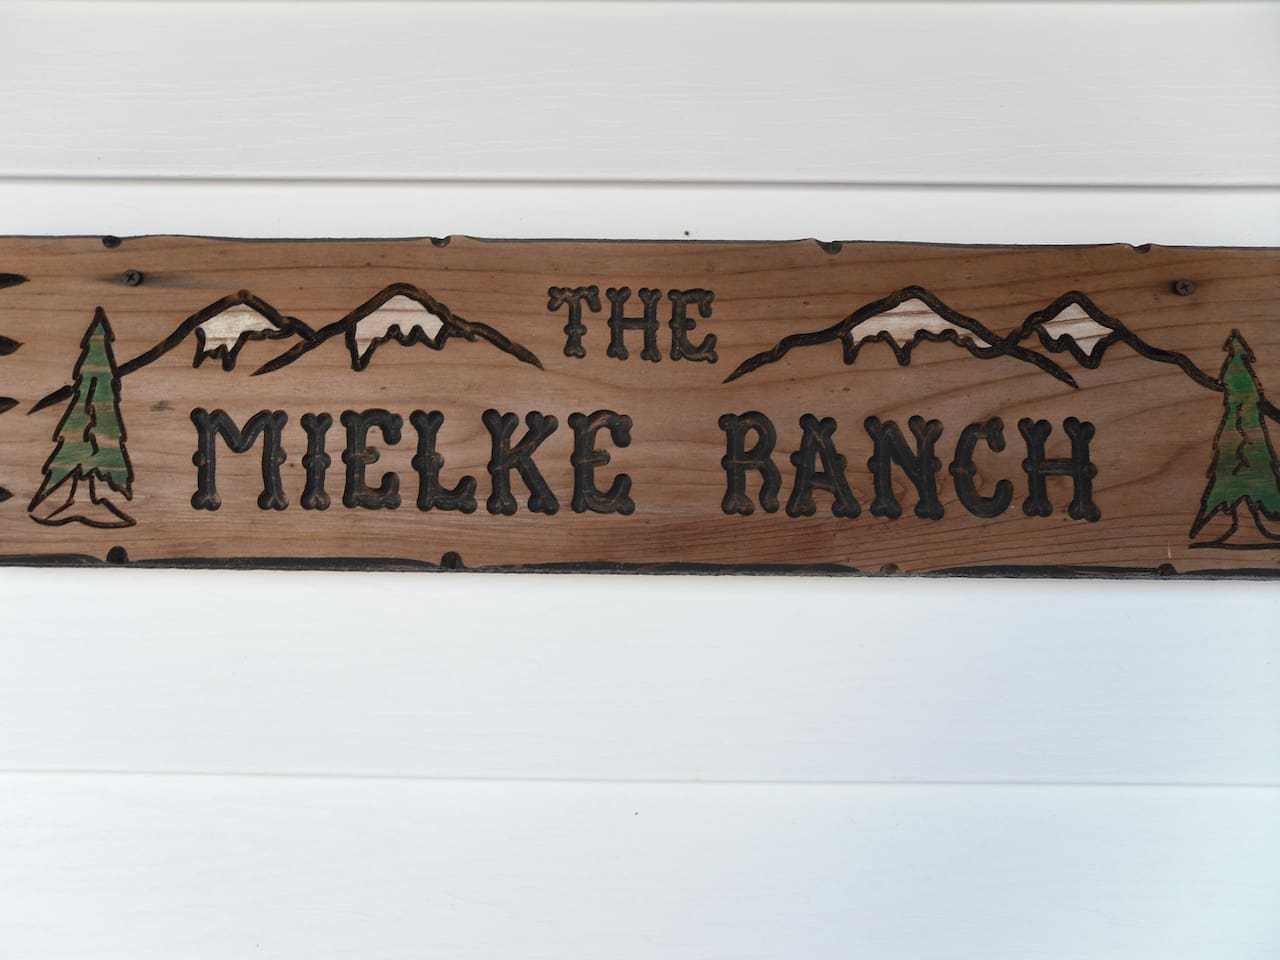 You are always welcome here on our ranch